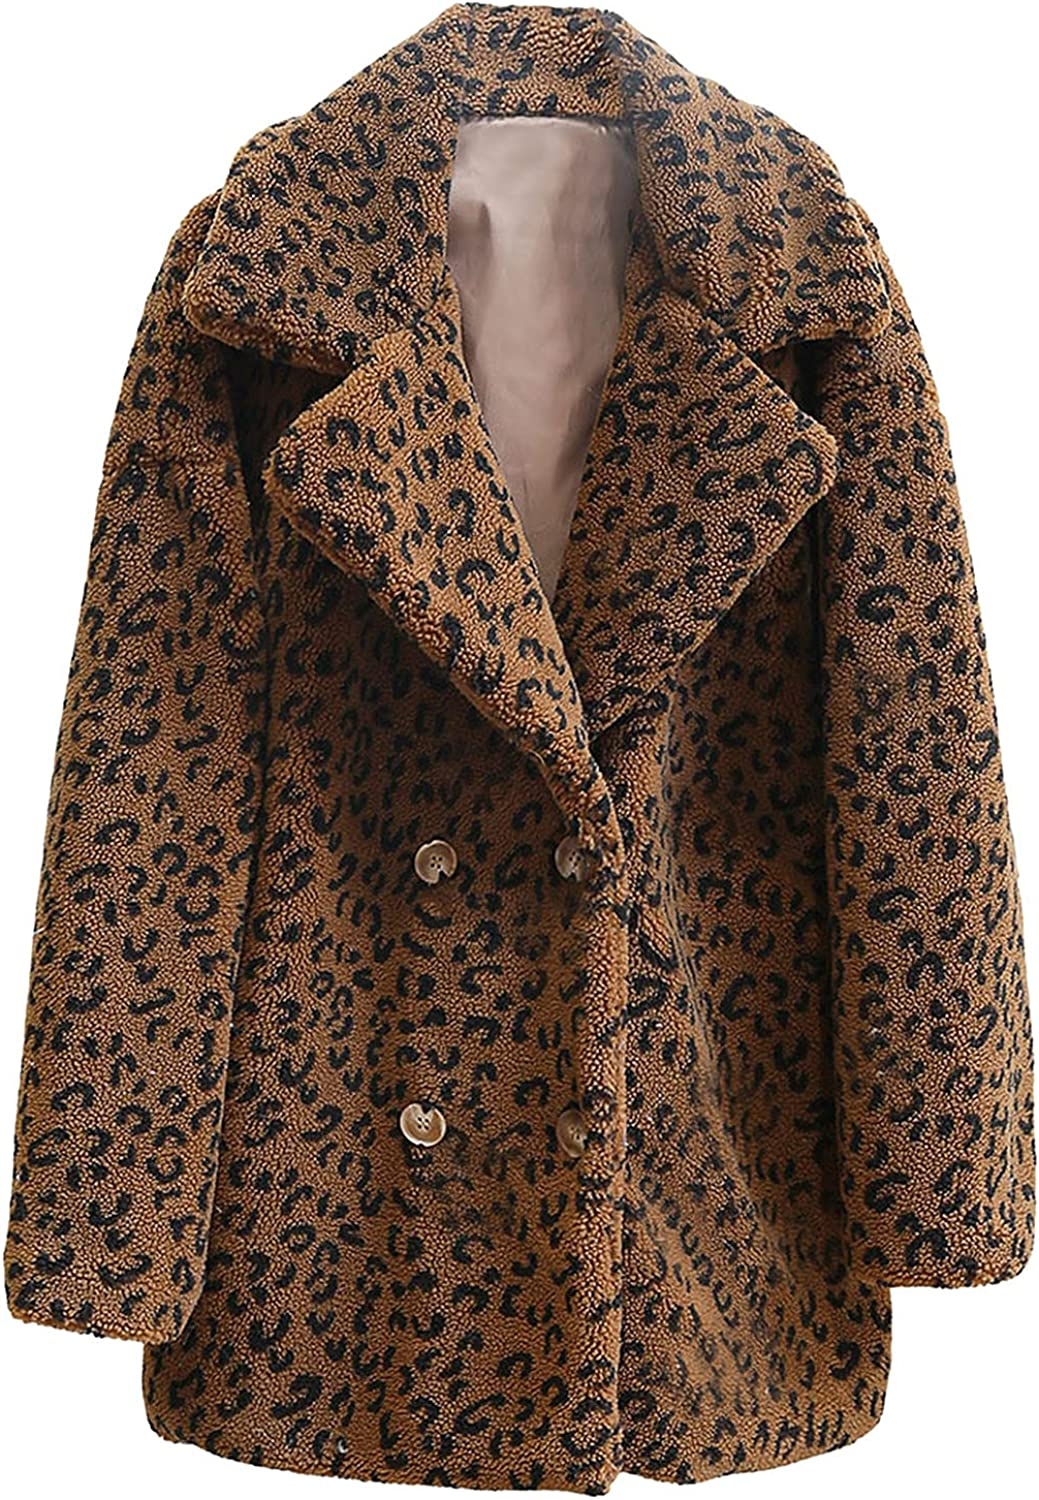 YfiDSJFGJ Womens Jacket Fashion Long Sleeve Open Front Leopard Print Faux Leather Mid-Length Thick Suit,Pink Ladies Jacket